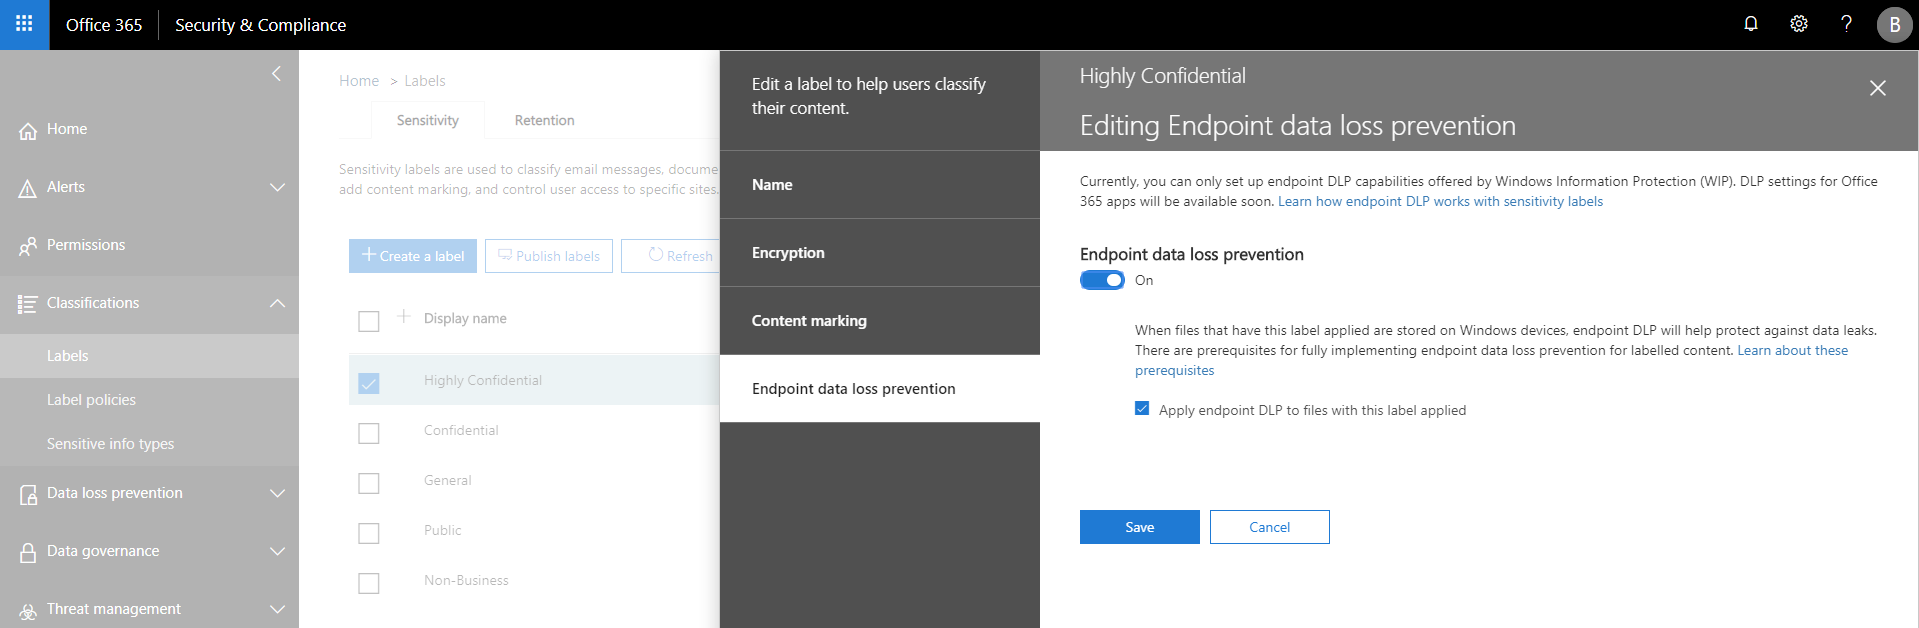 Figure 4. Office Security & Compliance Center  Endpoint data loss prevention configuration page